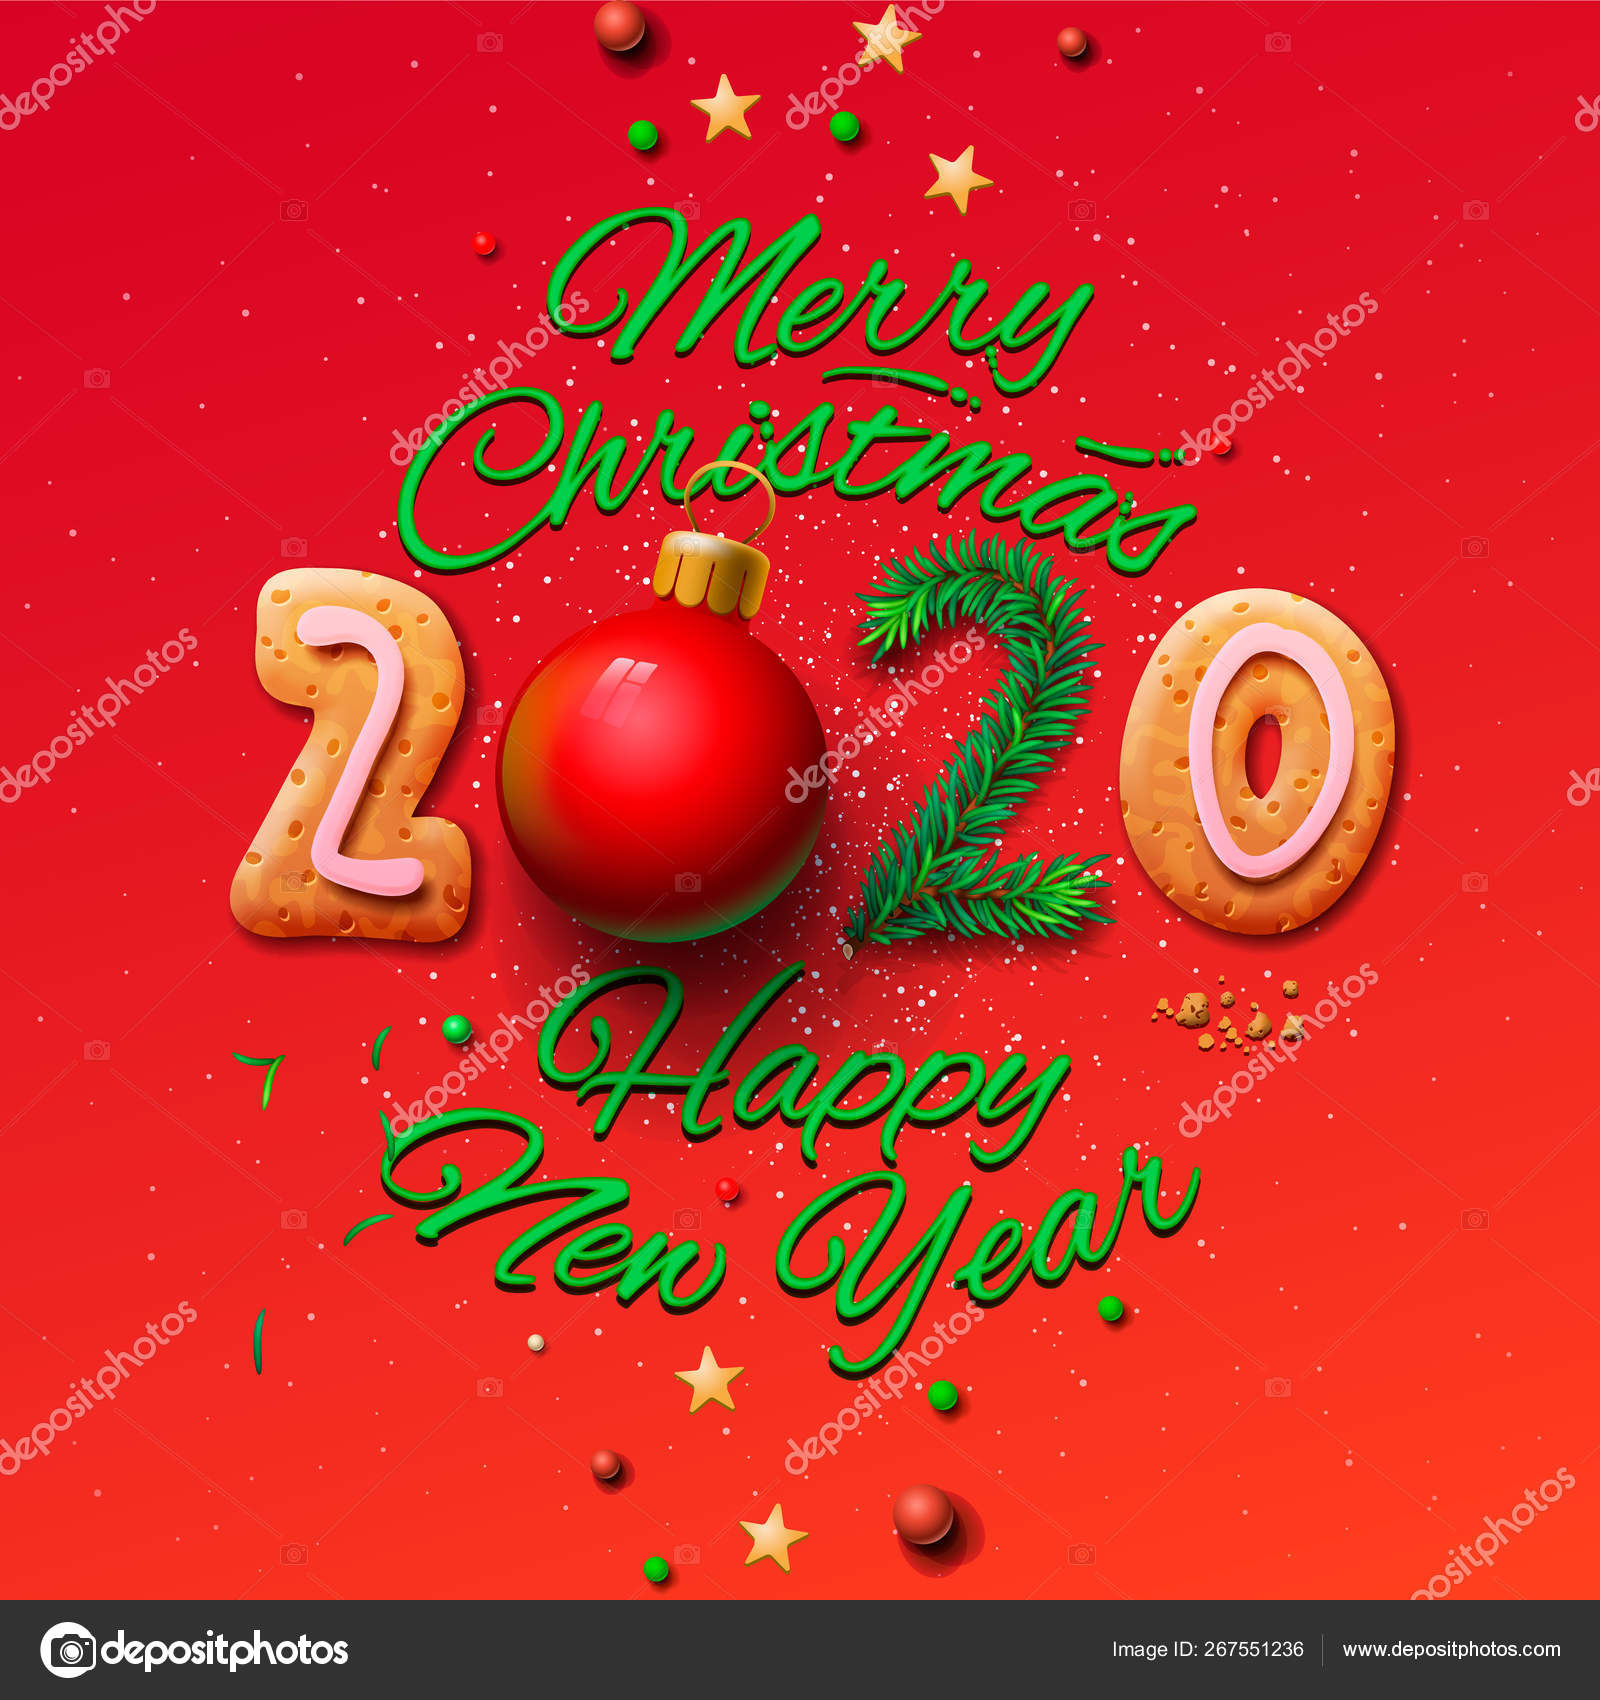 Merry Christmas and Happy New Year 2020 greeting card. vector illustration. — Stock Vector © ikopylove #267551236